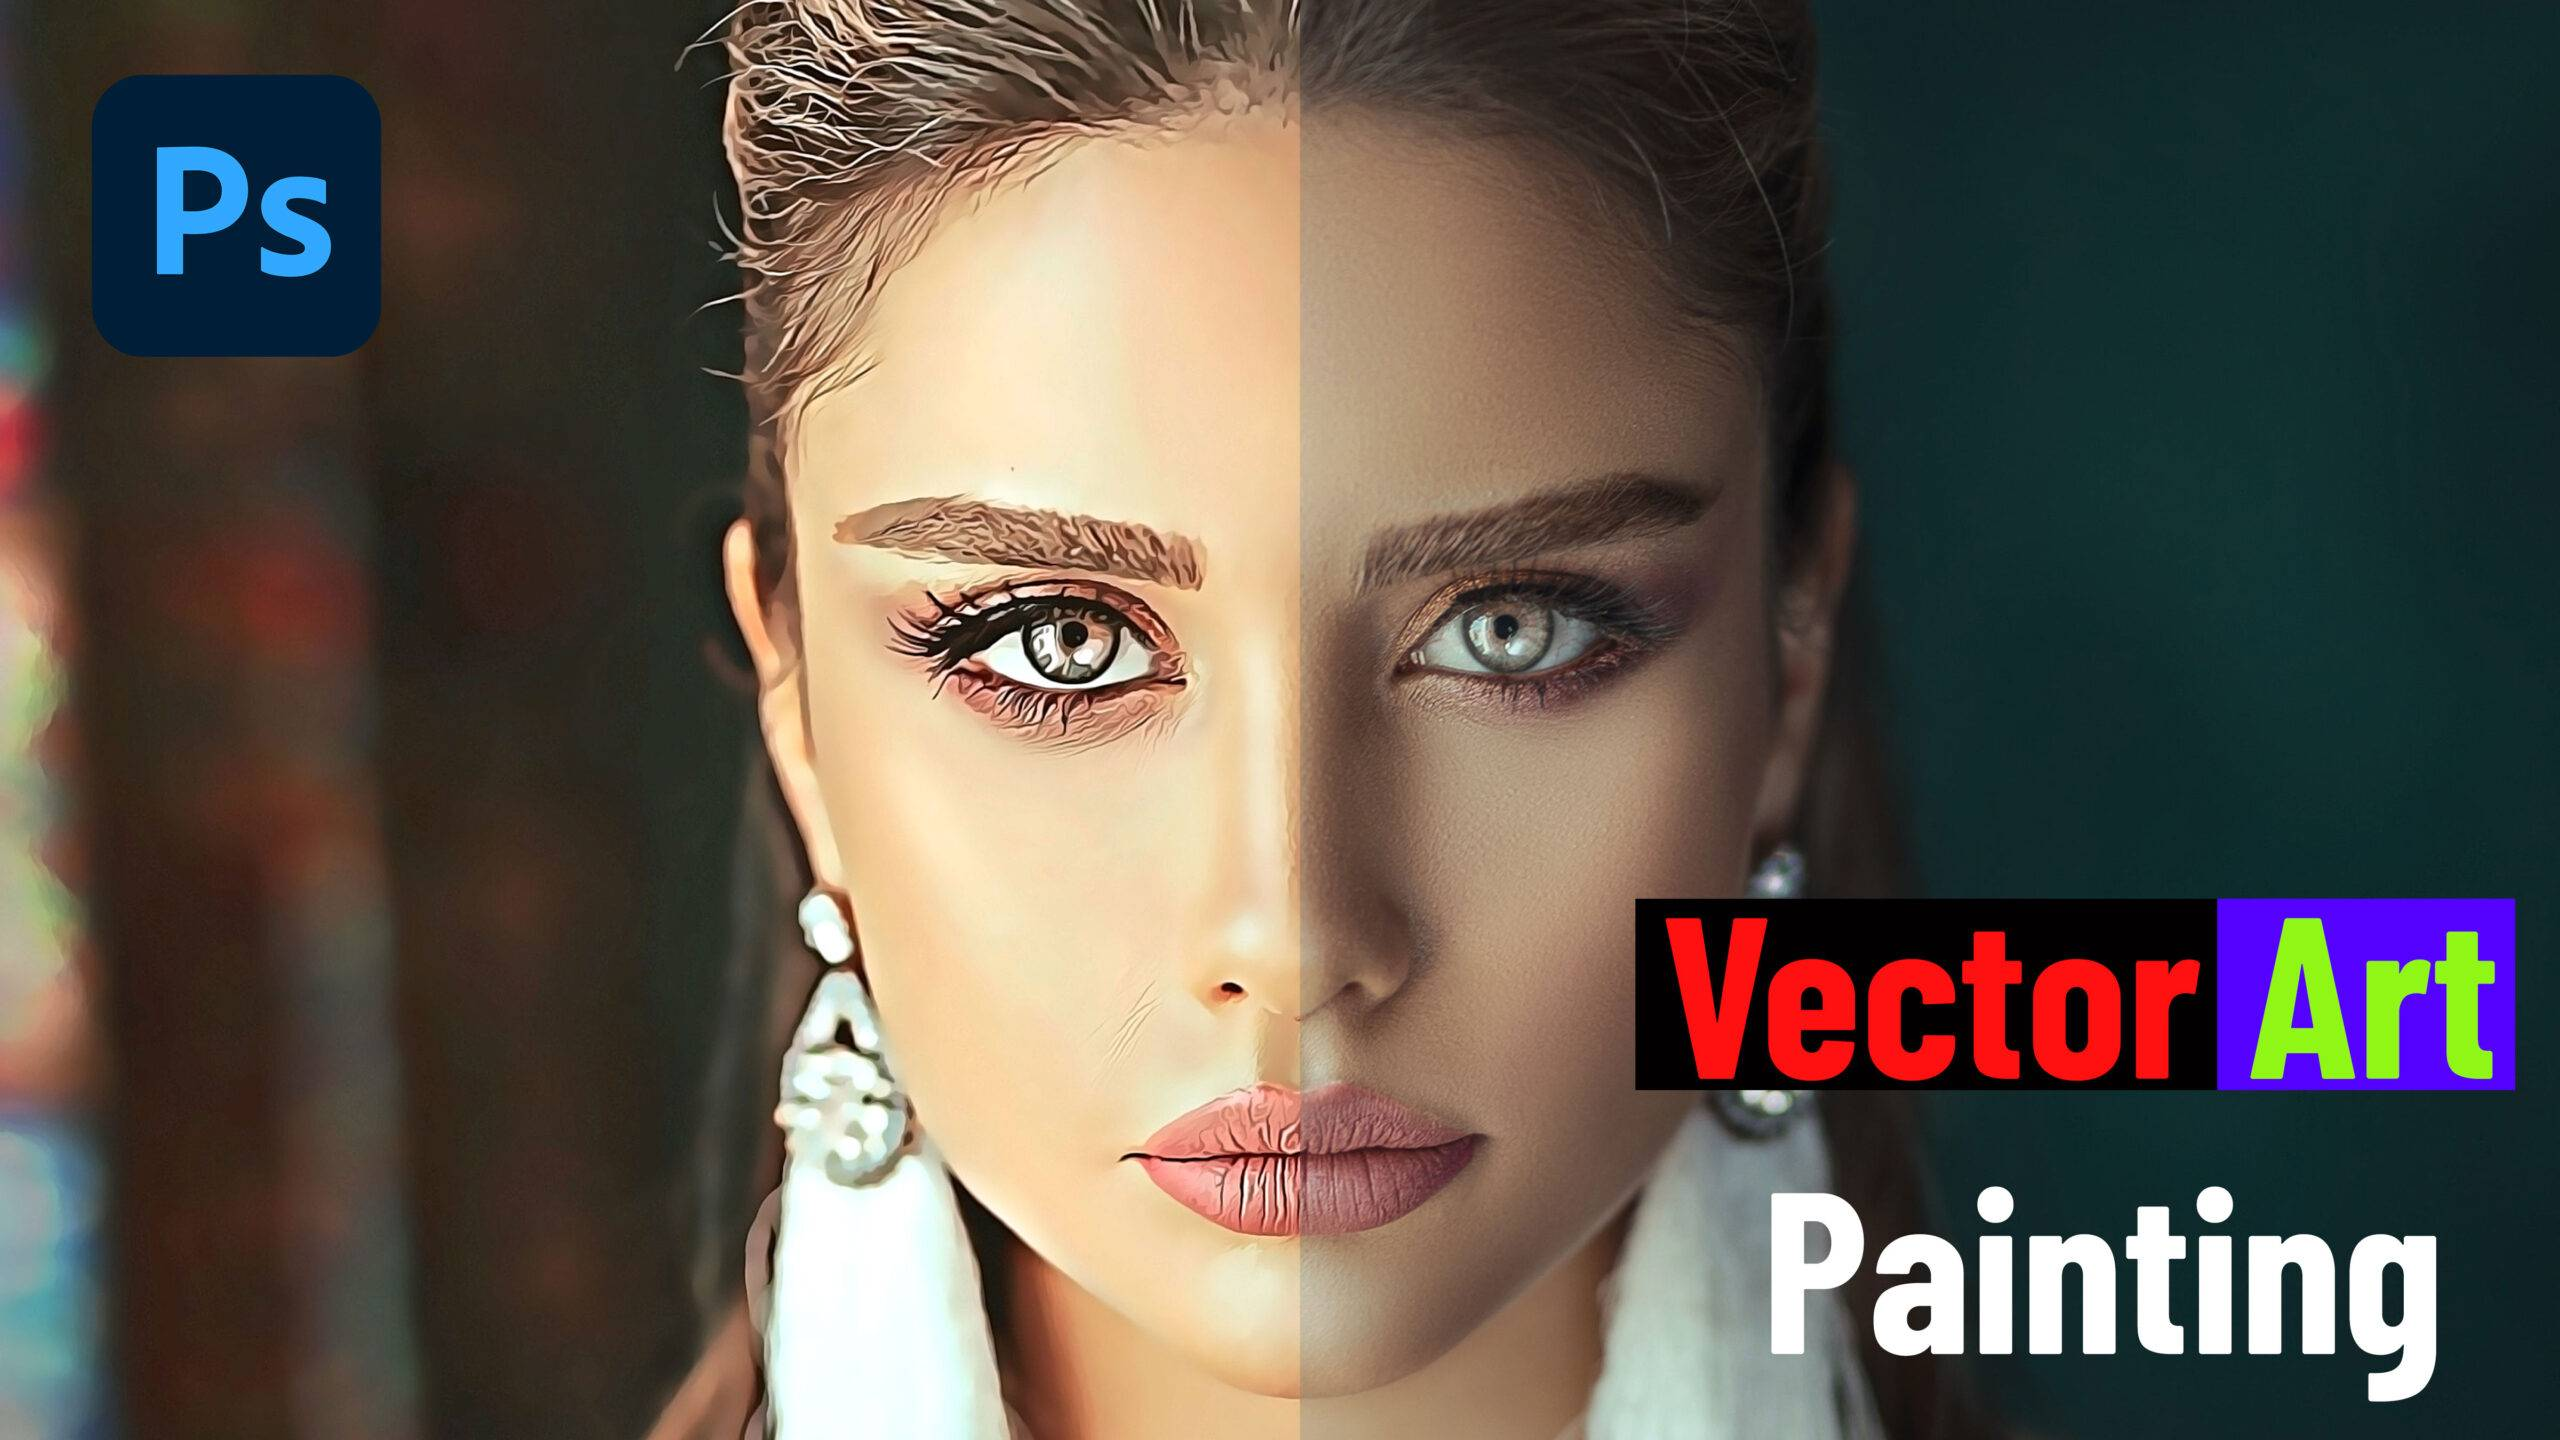 vector art painting scaled